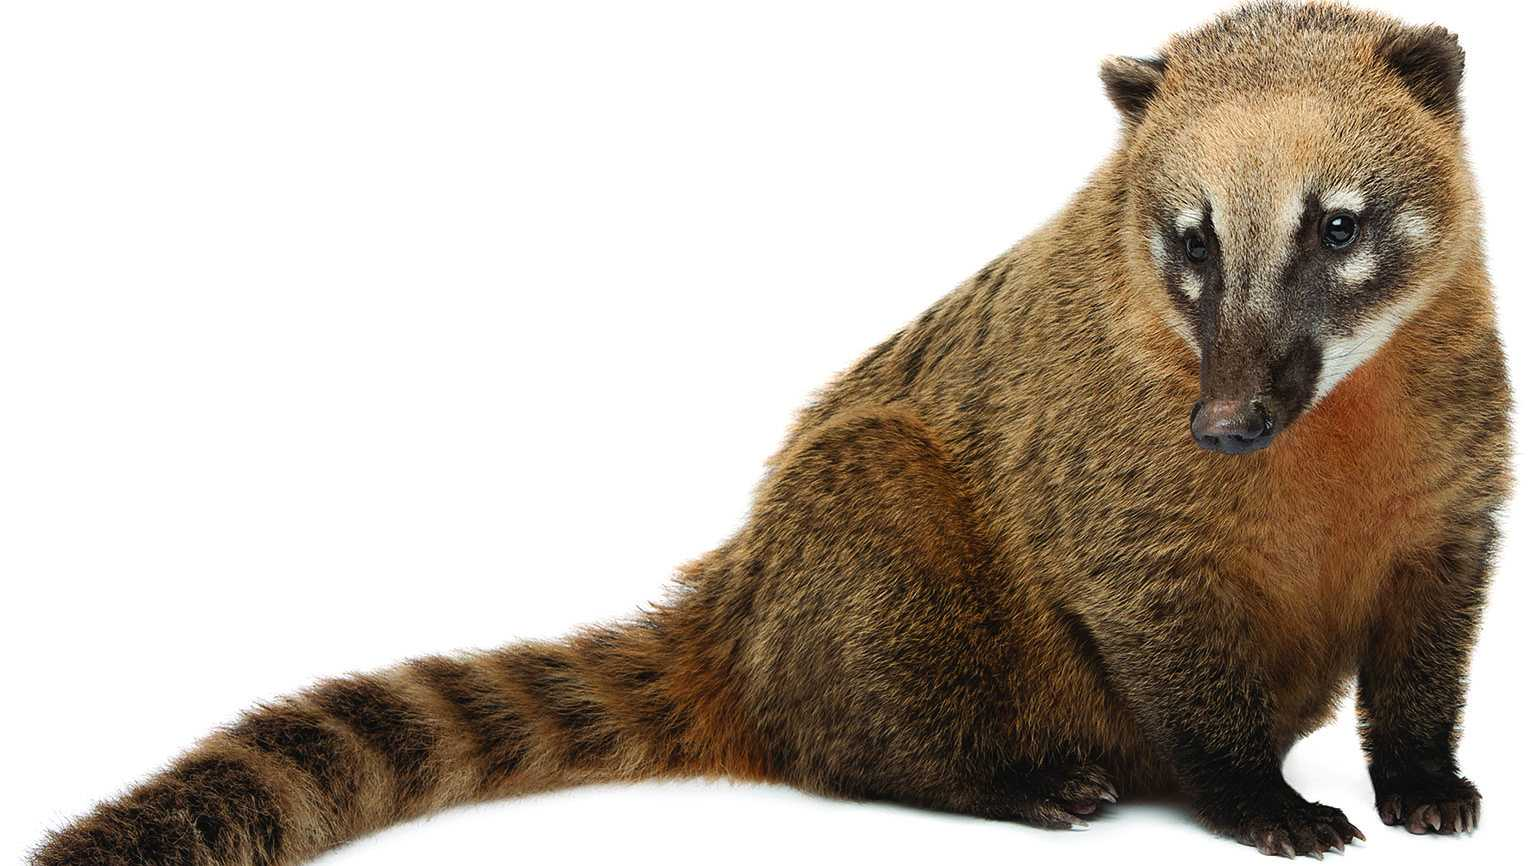 Coati, member of the raccoon family